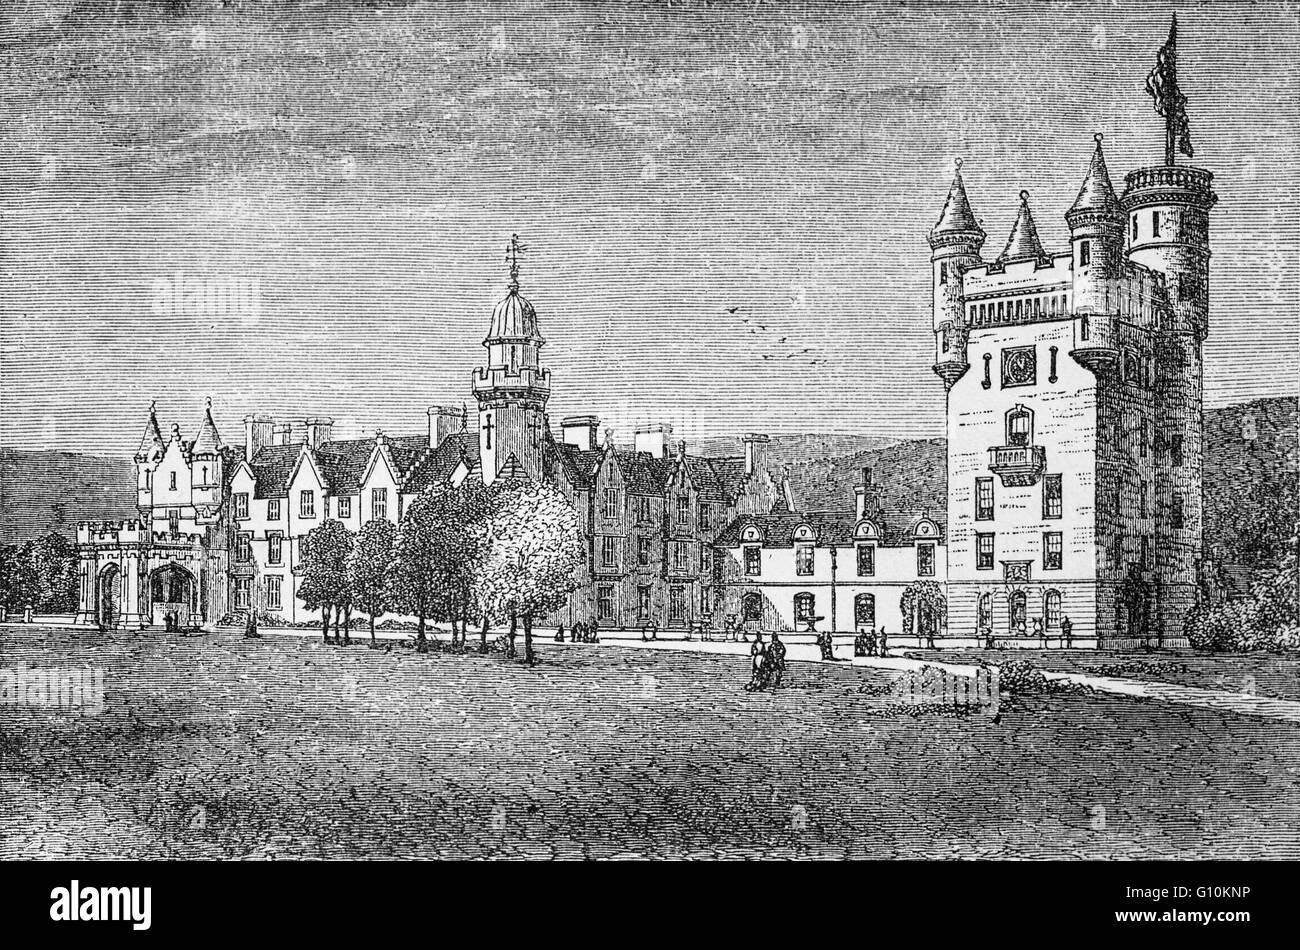 Balmoral Castle, Residence of the British Royal Family since 1852, when it was purchased by Prince Albert, consort - Stock Image